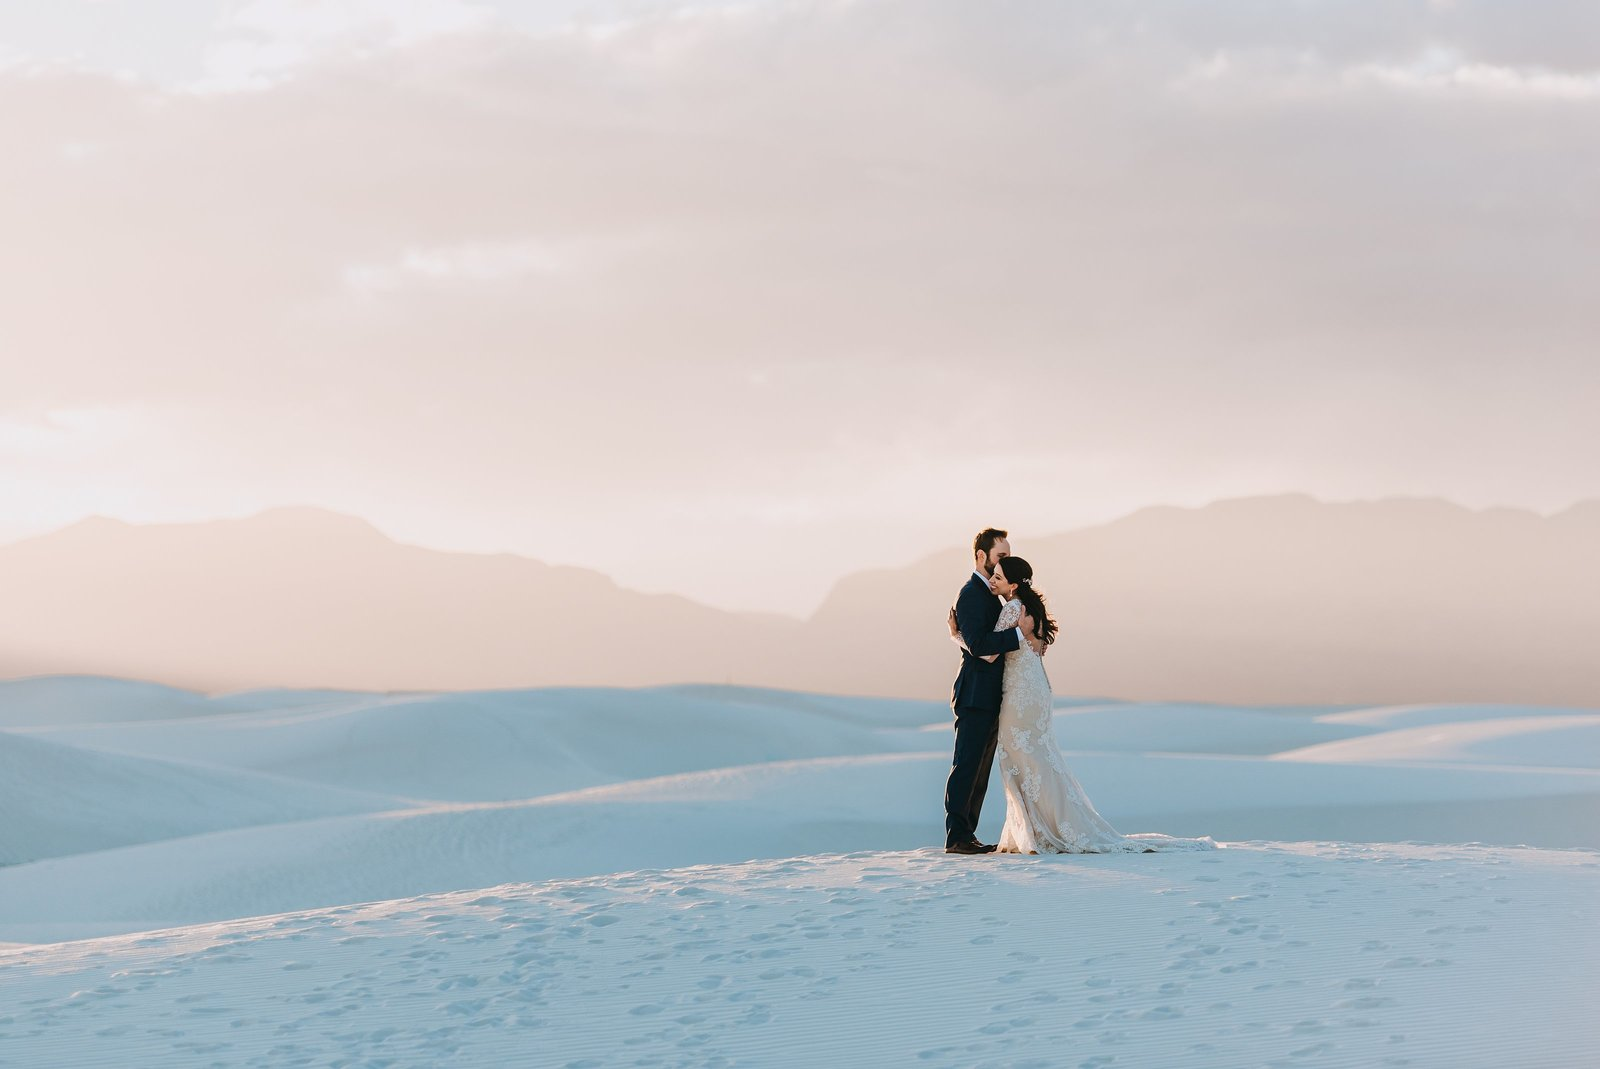 Bride and groom at their adventure wedding elopement at White Sands National Park